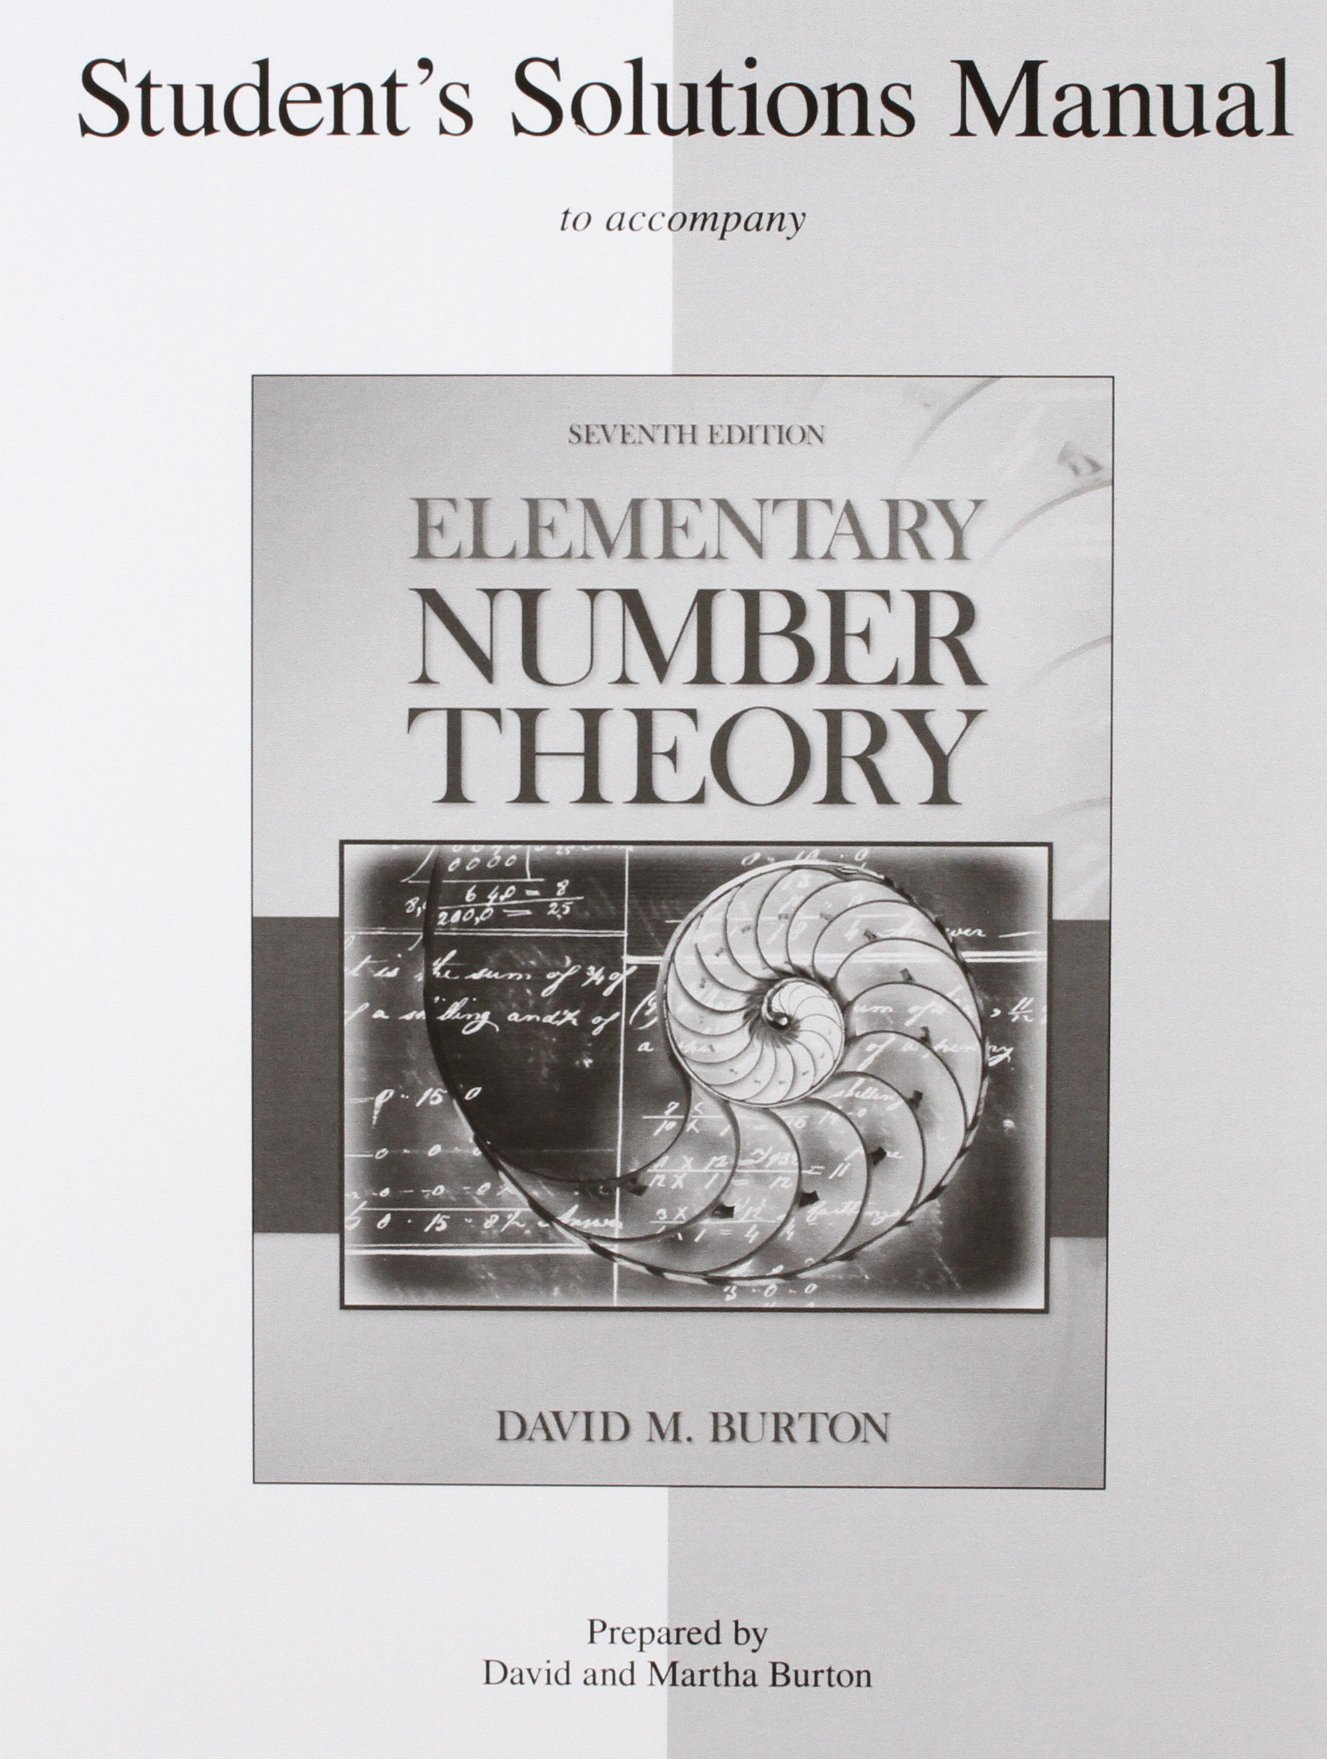 Student's Solutions Manual Elementary Number Theory: David Burton:  9780077298463: Books - Amazon.ca